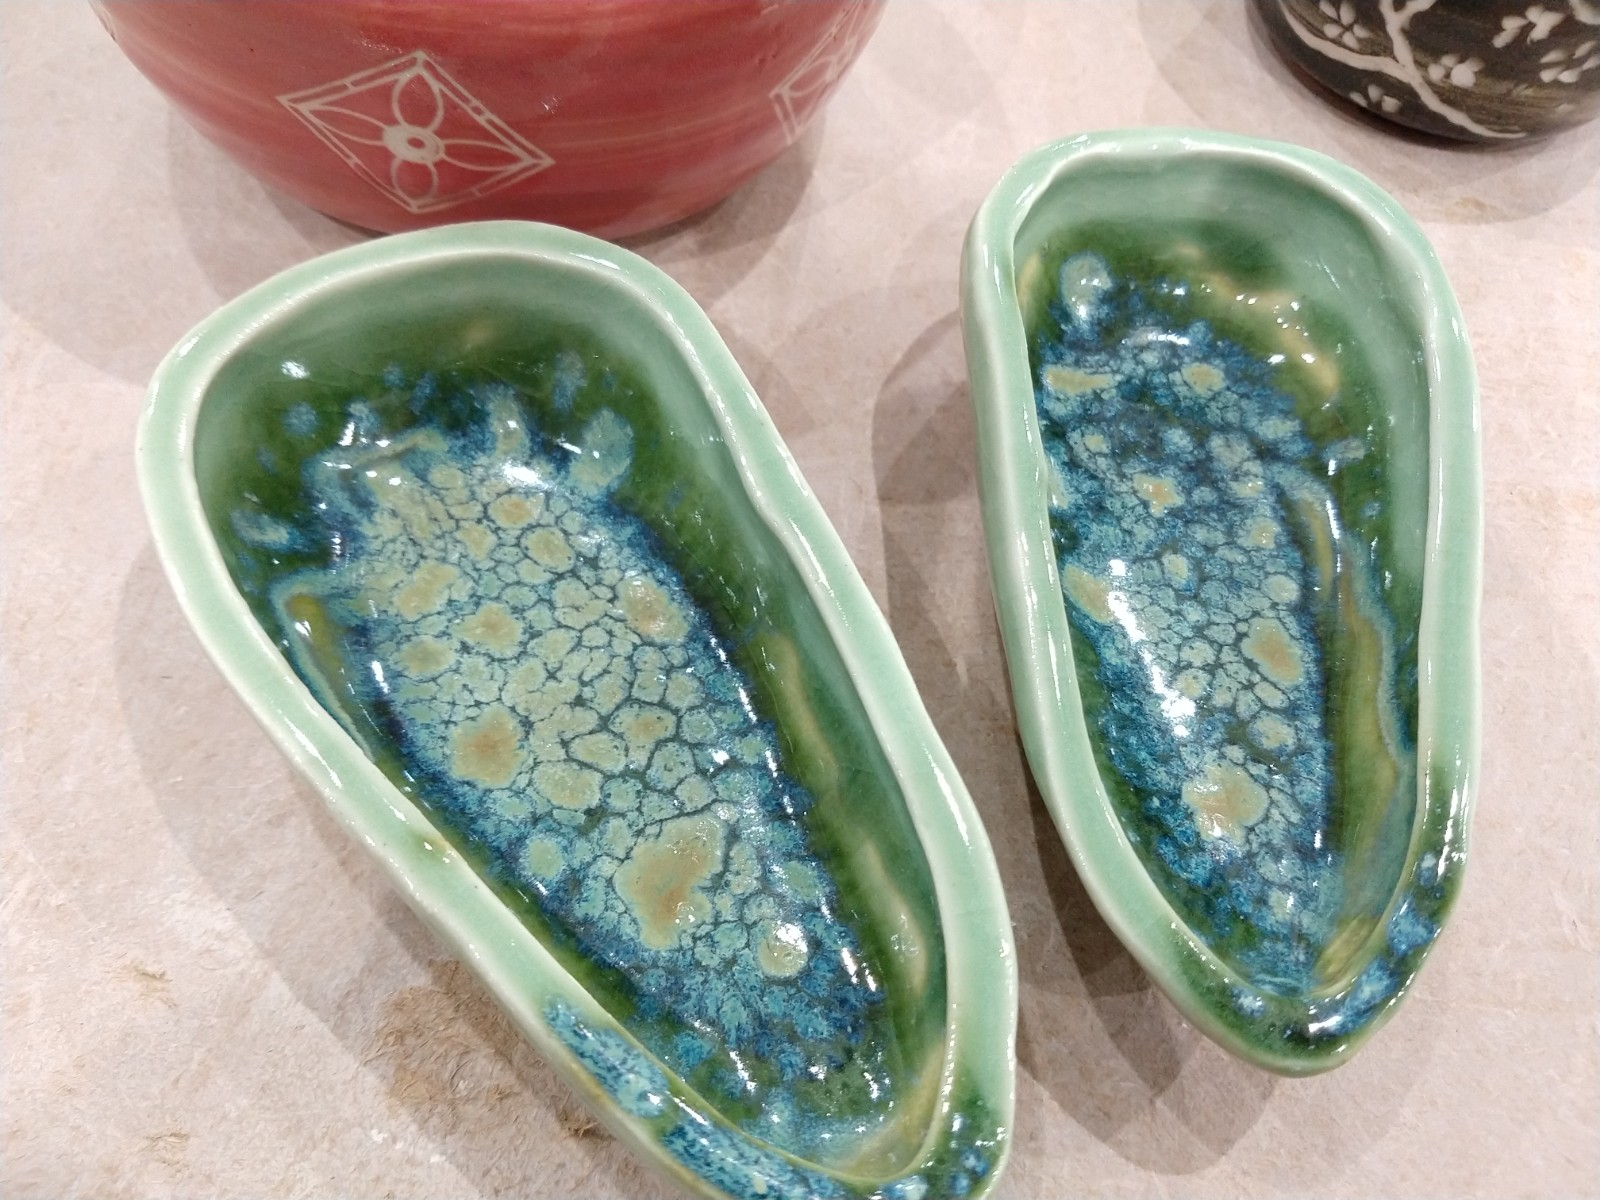 Avocado dishes